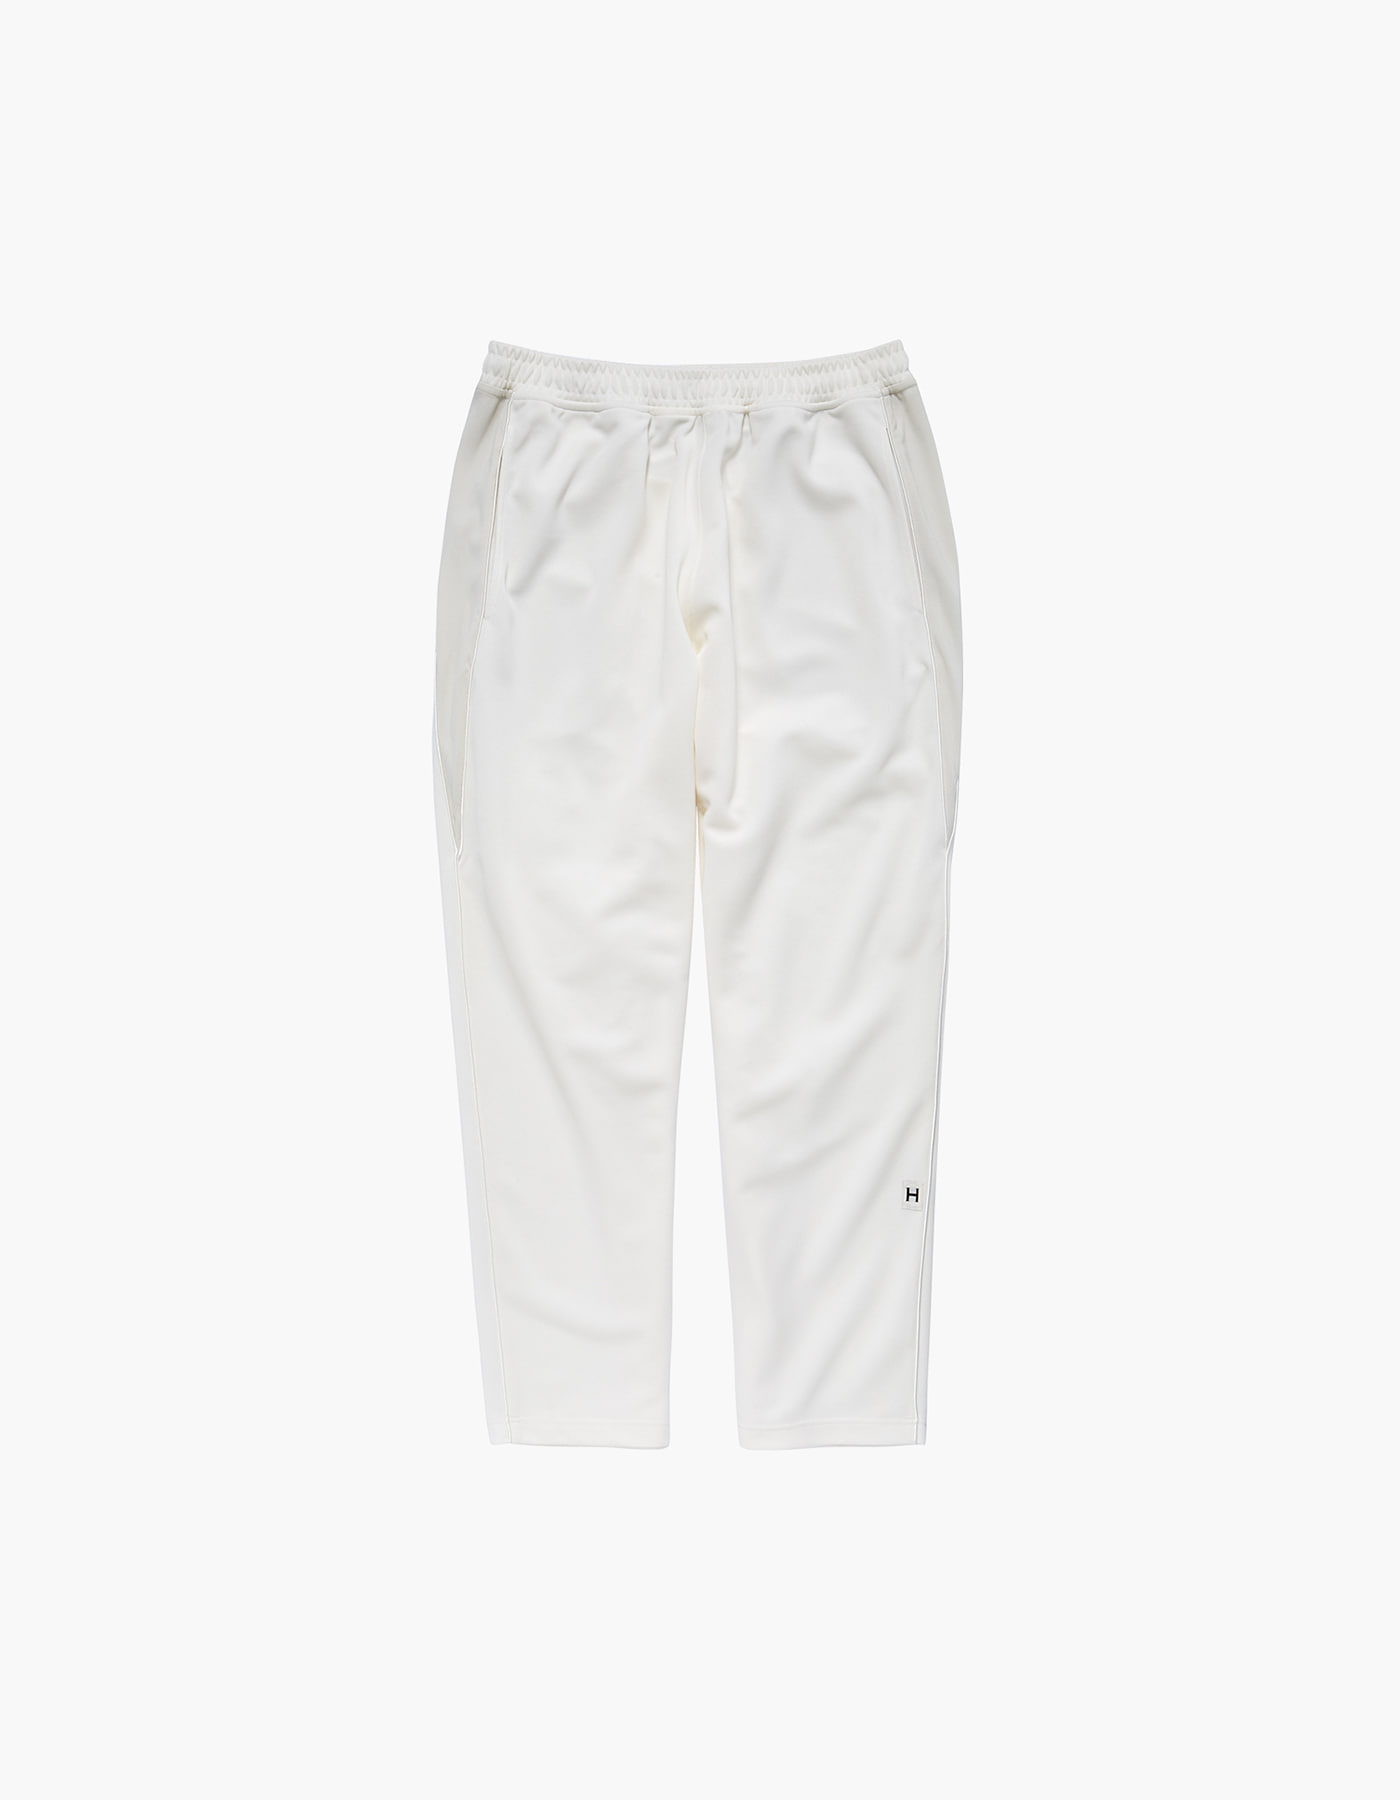 HFC CRICKET PANTS / IVORY